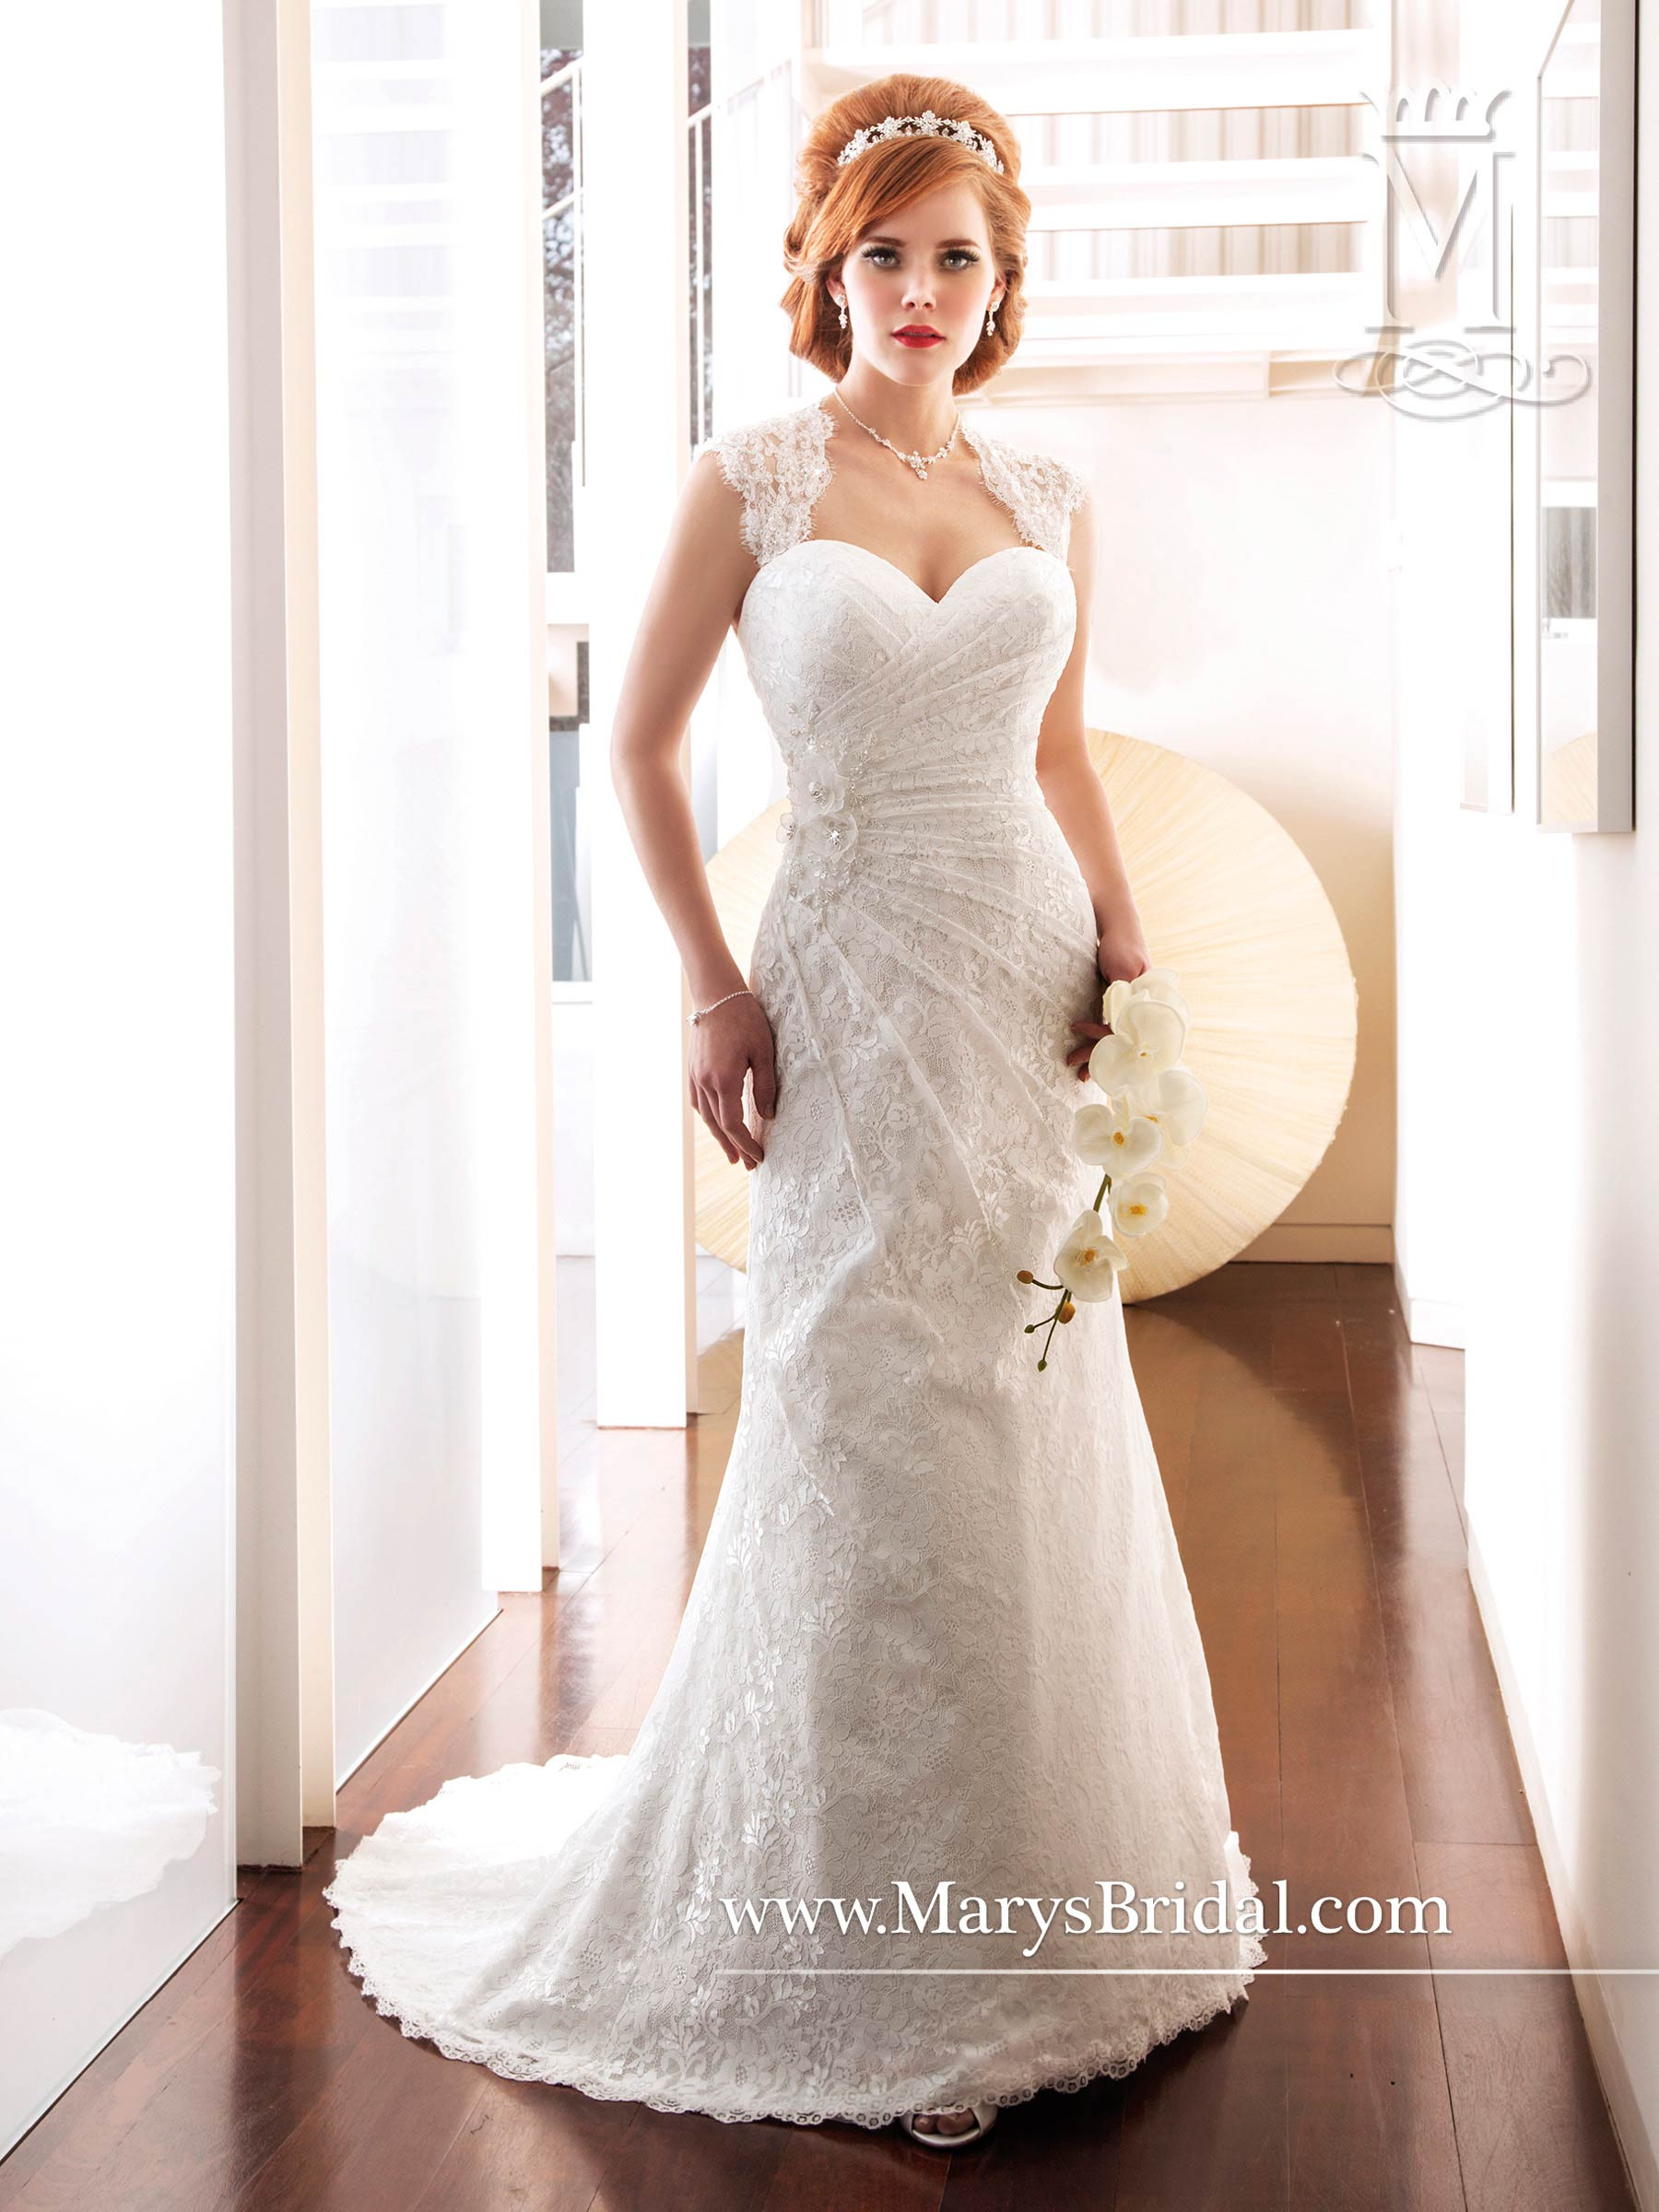 Bridal Wedding Dresses Style 6250 In White Color